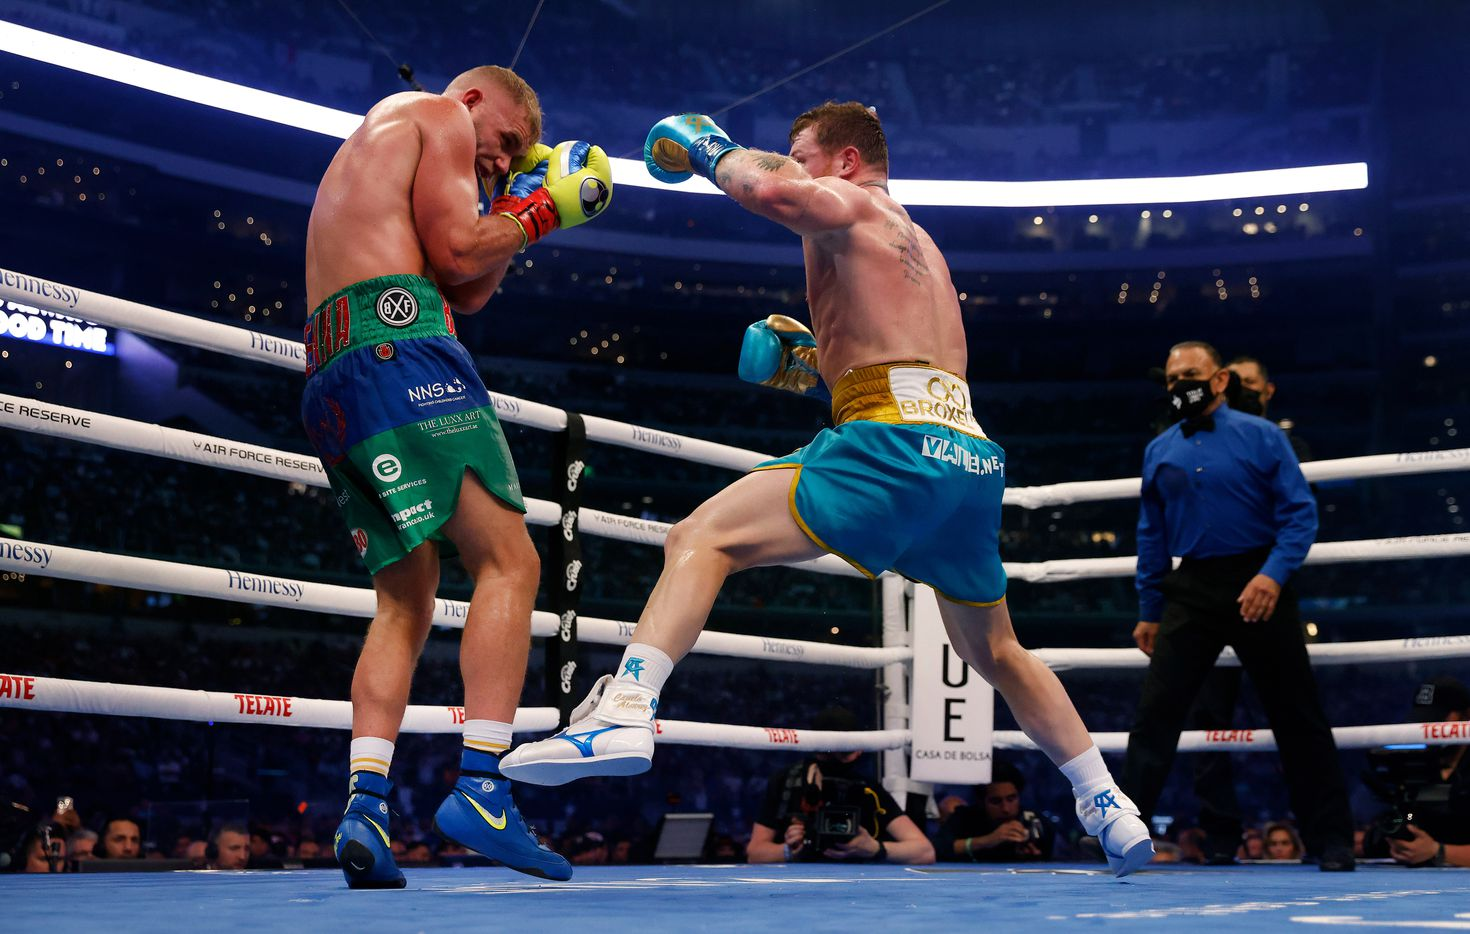 Boxer Canelo Alvarez (right) delivers a flurry of punches on Billy Joe Saunders during their super middleweight title fight at AT&T Stadium in Arlington, Saturday, May 8, 2021. Saunders couldn't go beyond the eighth round because he sustained an eye injury and could not see. (Tom Fox/The Dallas Morning News)